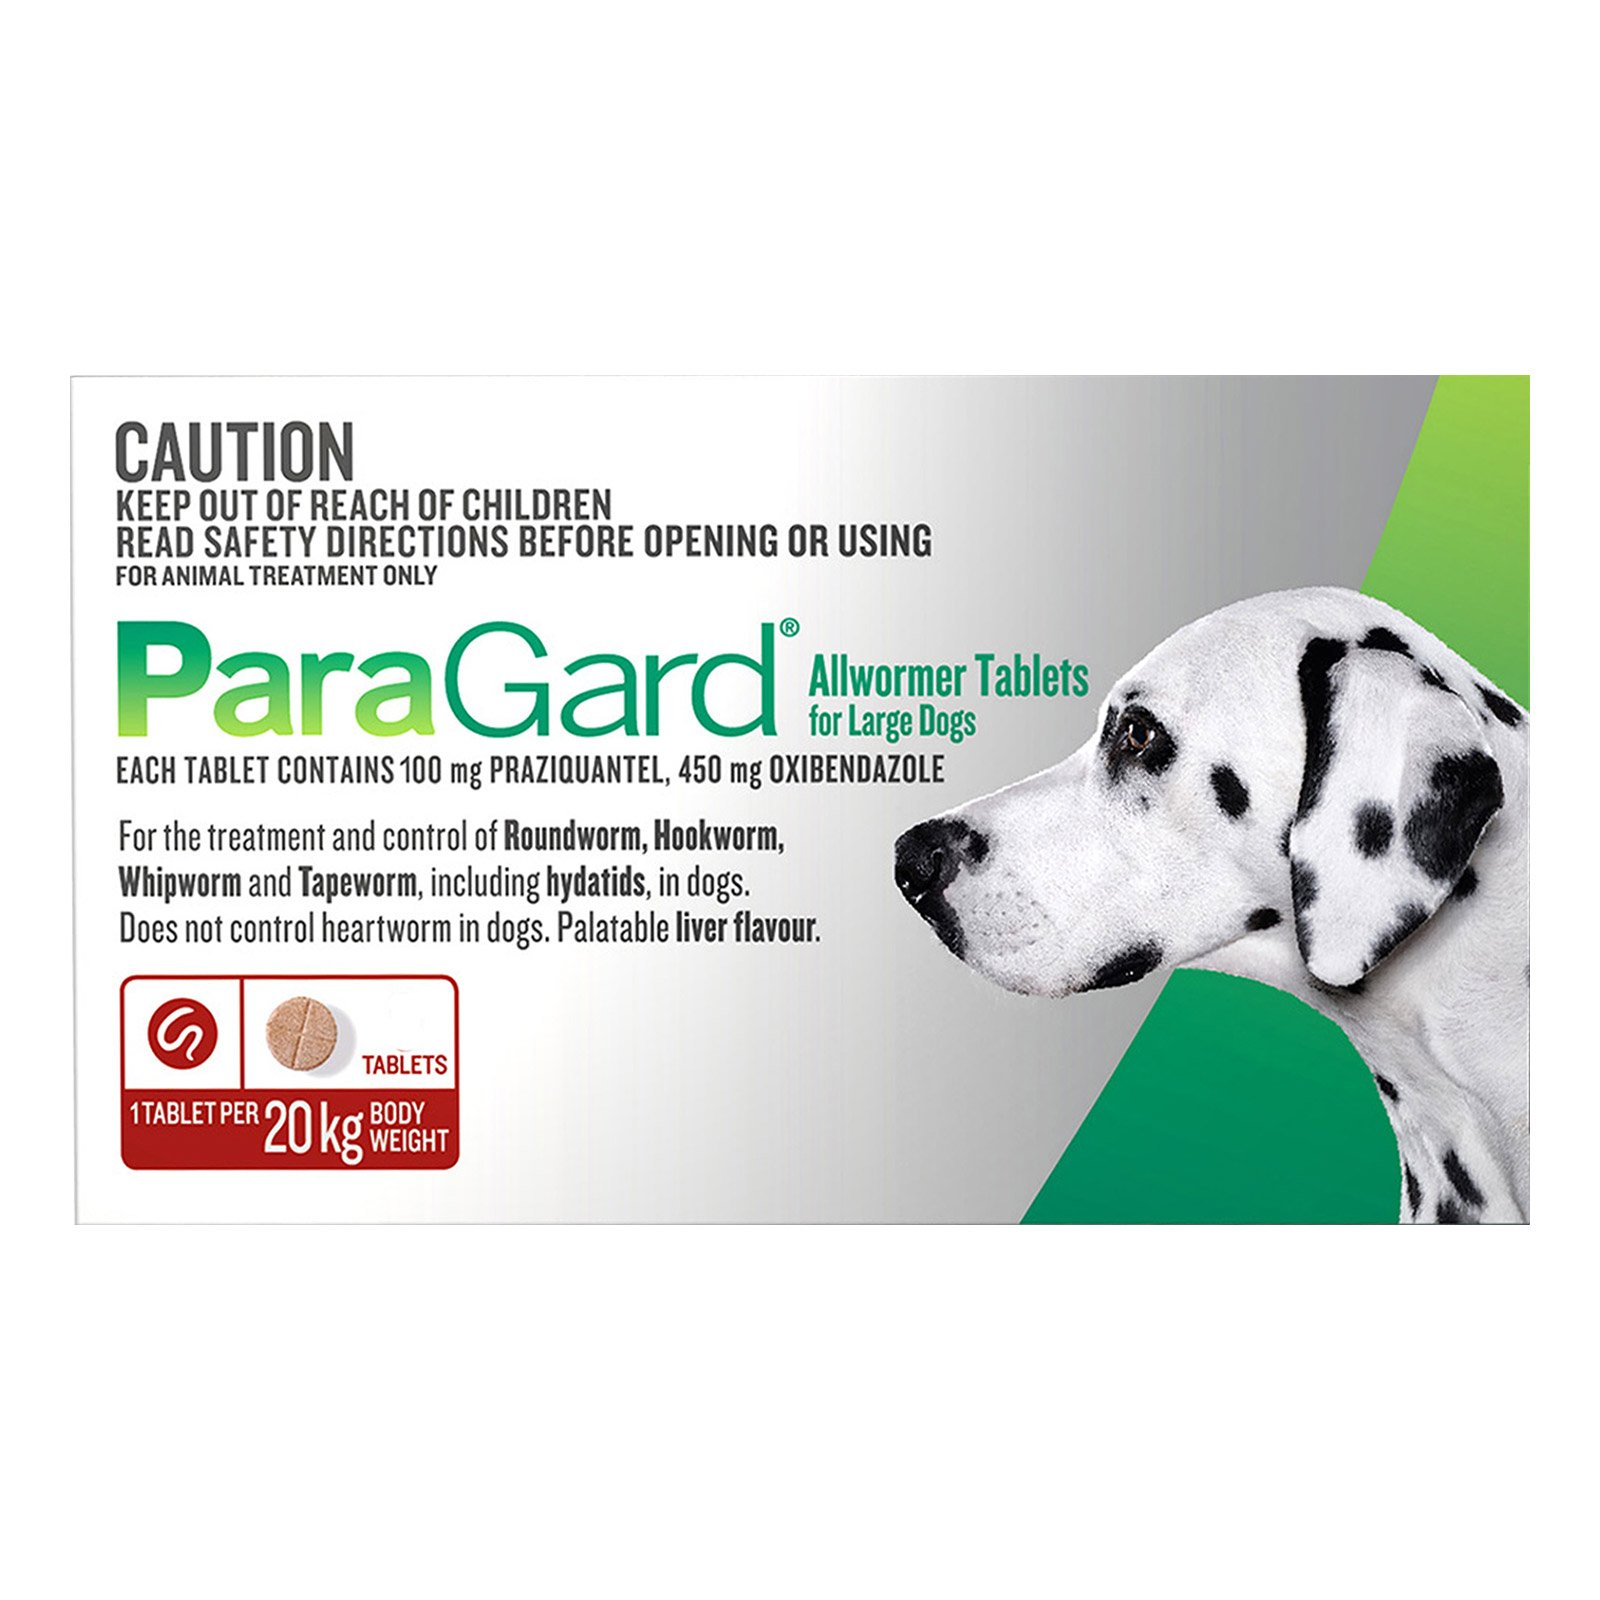 paragard-broad-spectrum-wormer-for-dogs-20kg-Red.jpg